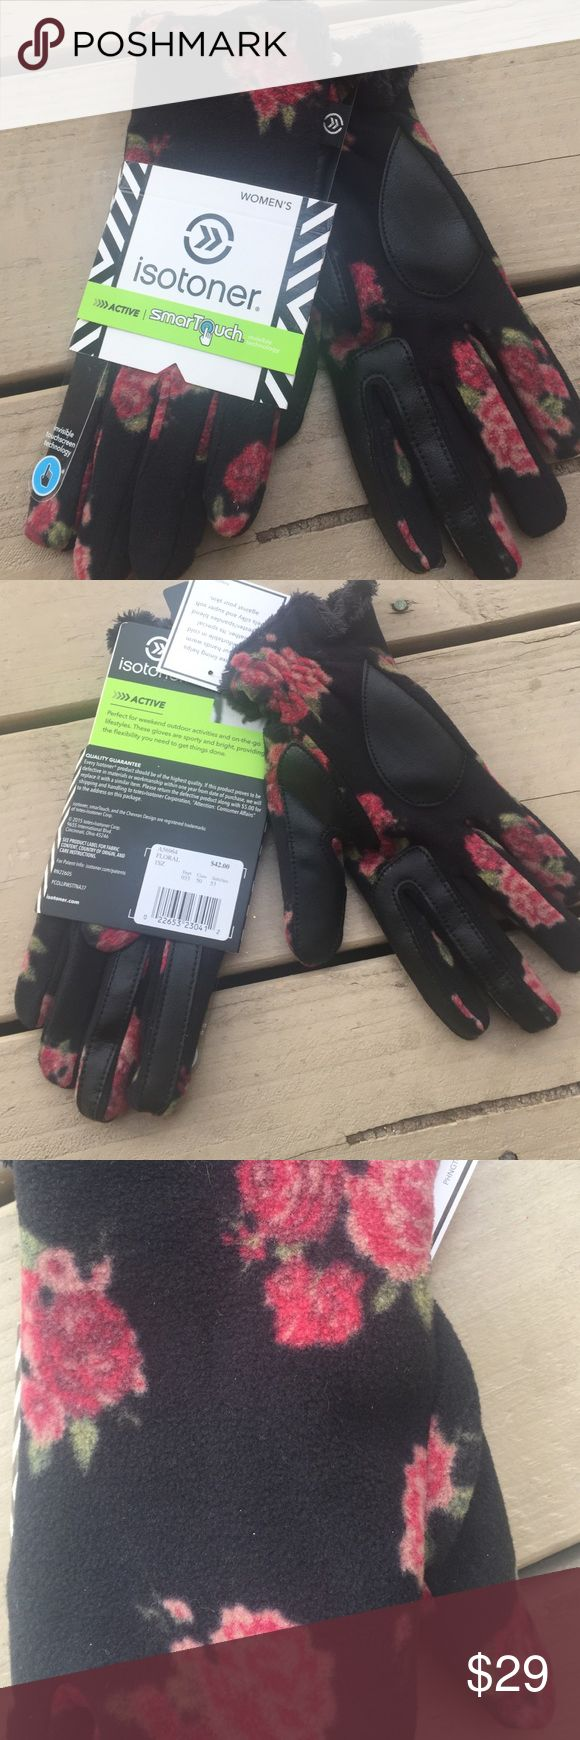 Isotoner womens leather gloves with fleece lining - Floral Isotoner Gloves Sale Nwt